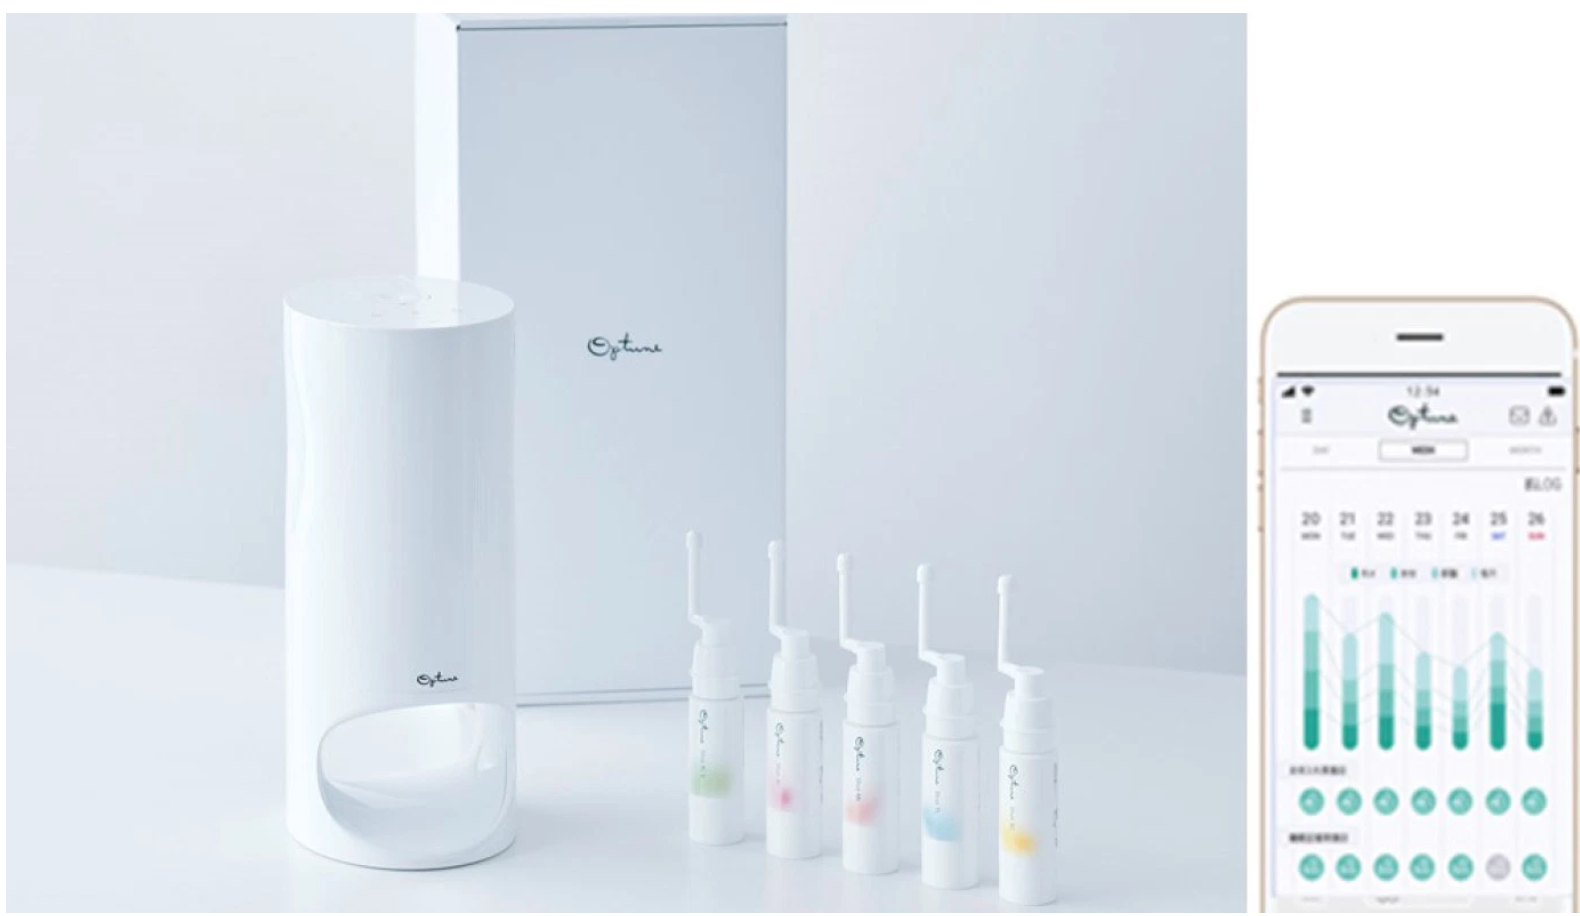 Optune, it's one of the first Internet of Things smart appliance systems in the beauty space combining an intelligent app with a physical dispenser. -